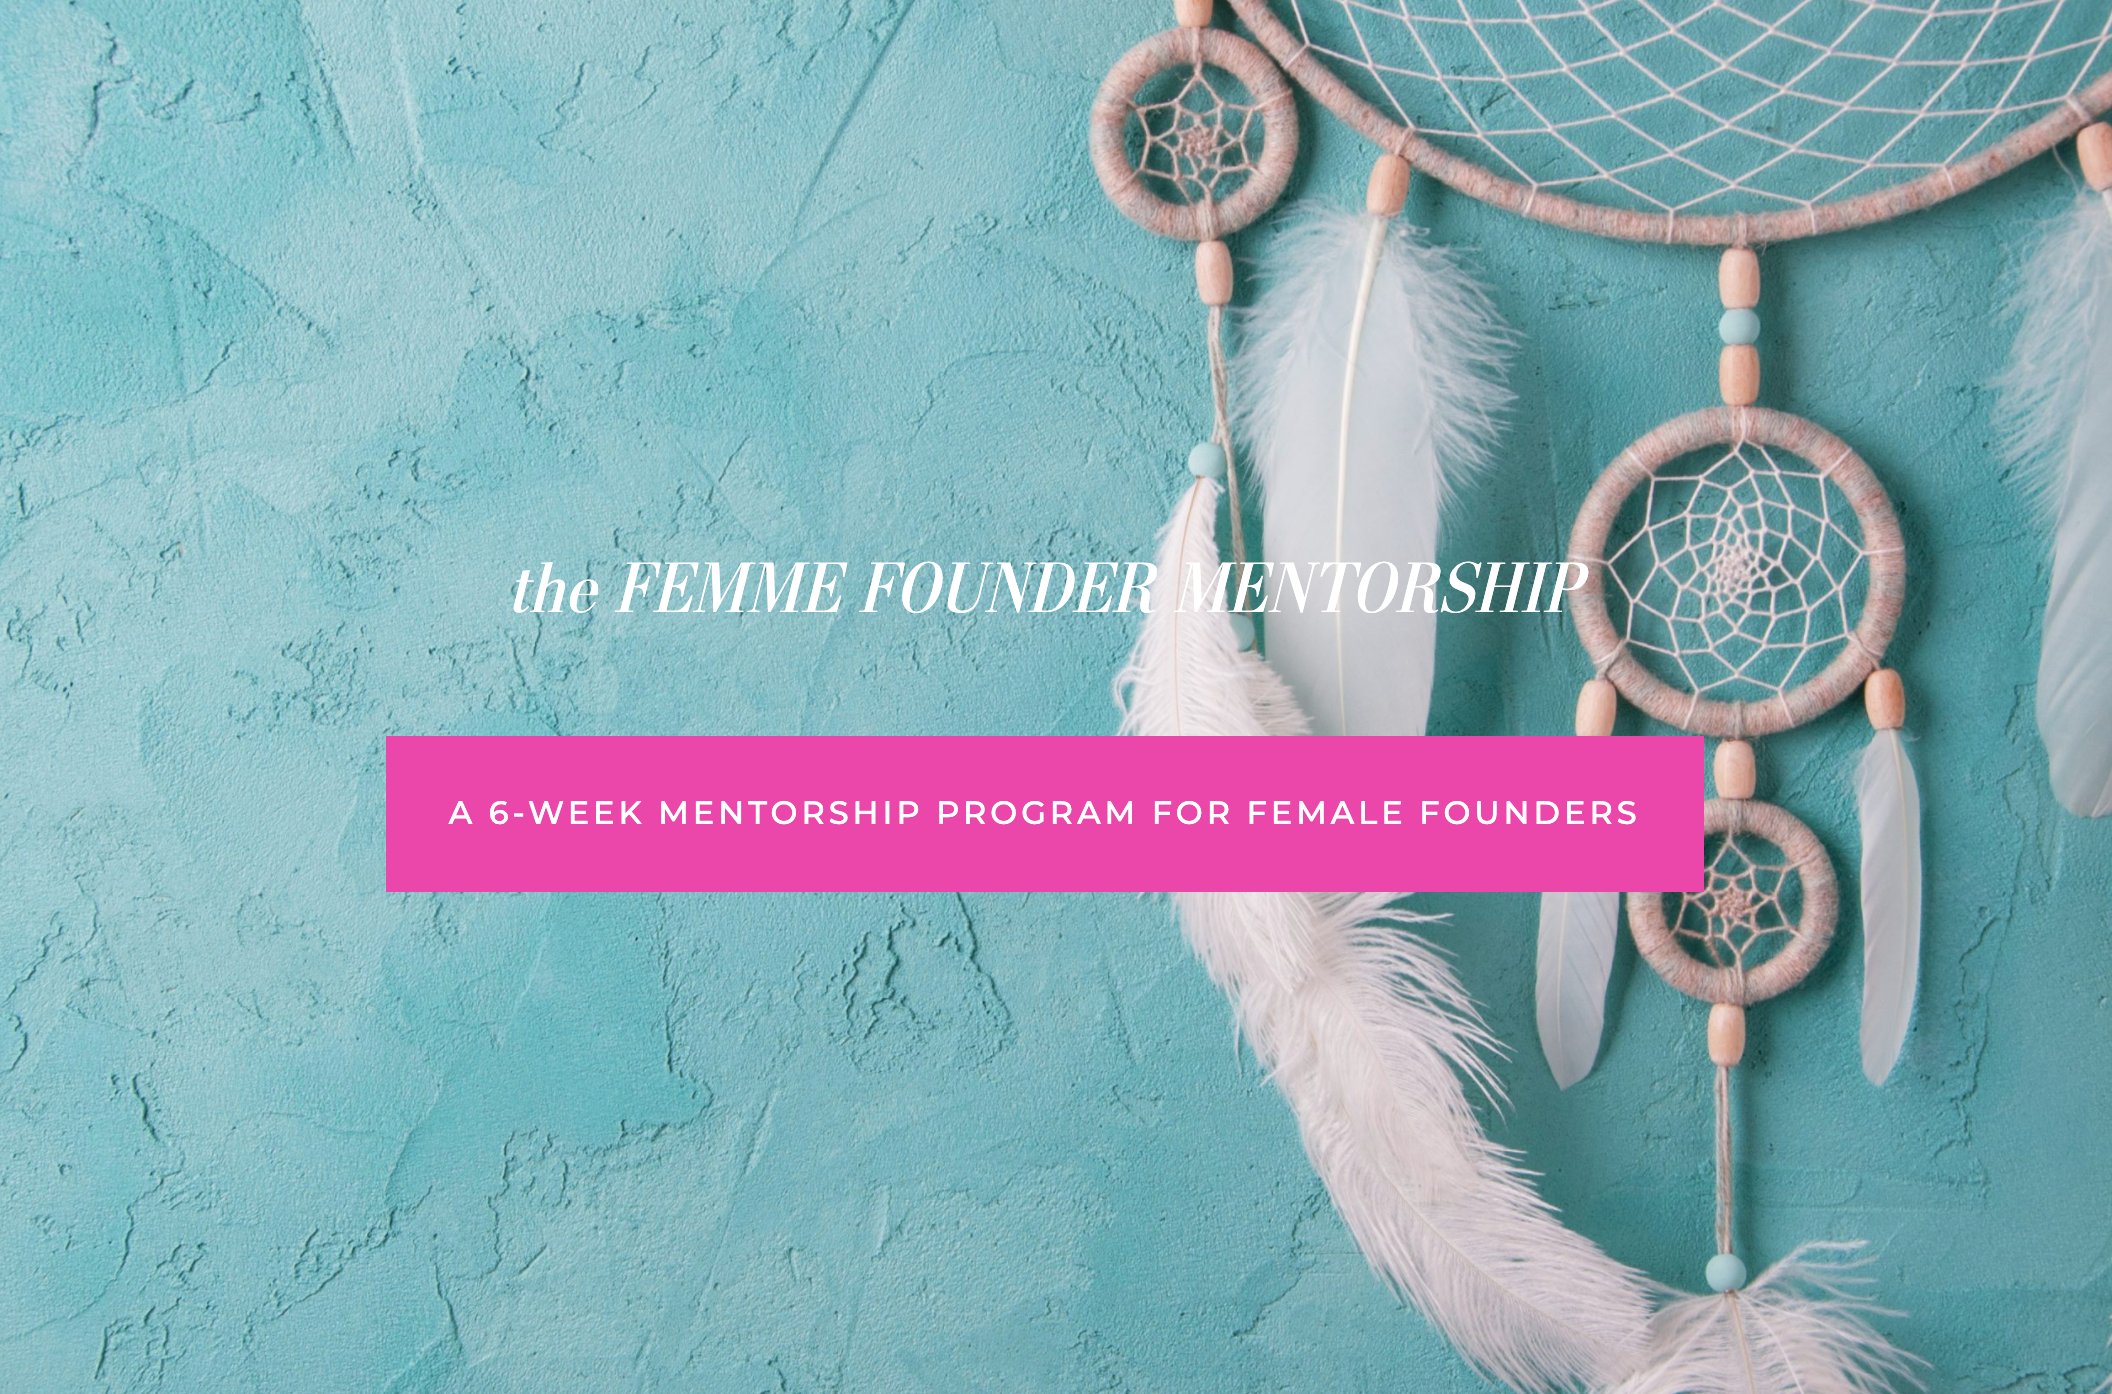 The Femme Founder Mentorship Program